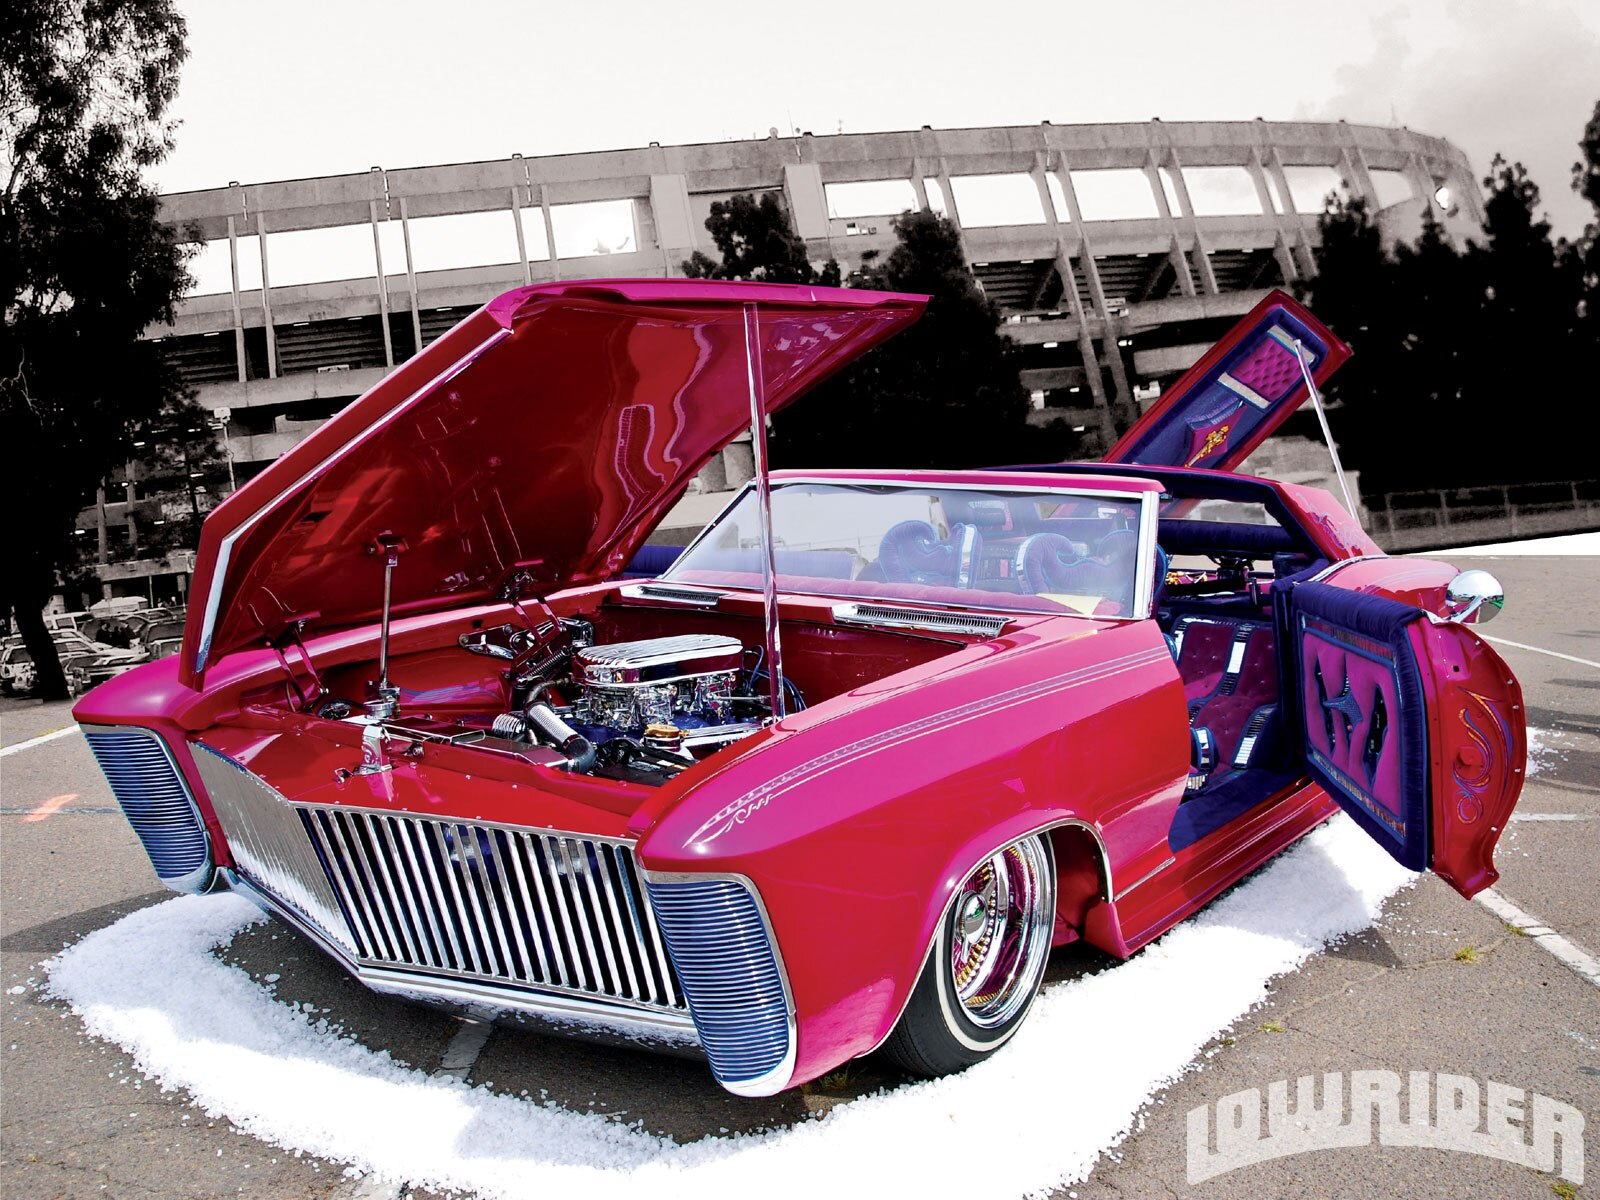 1009-lrmp-01-z-2010-experience-tour-san-diego-california-lowrider-front-driver-side-view2